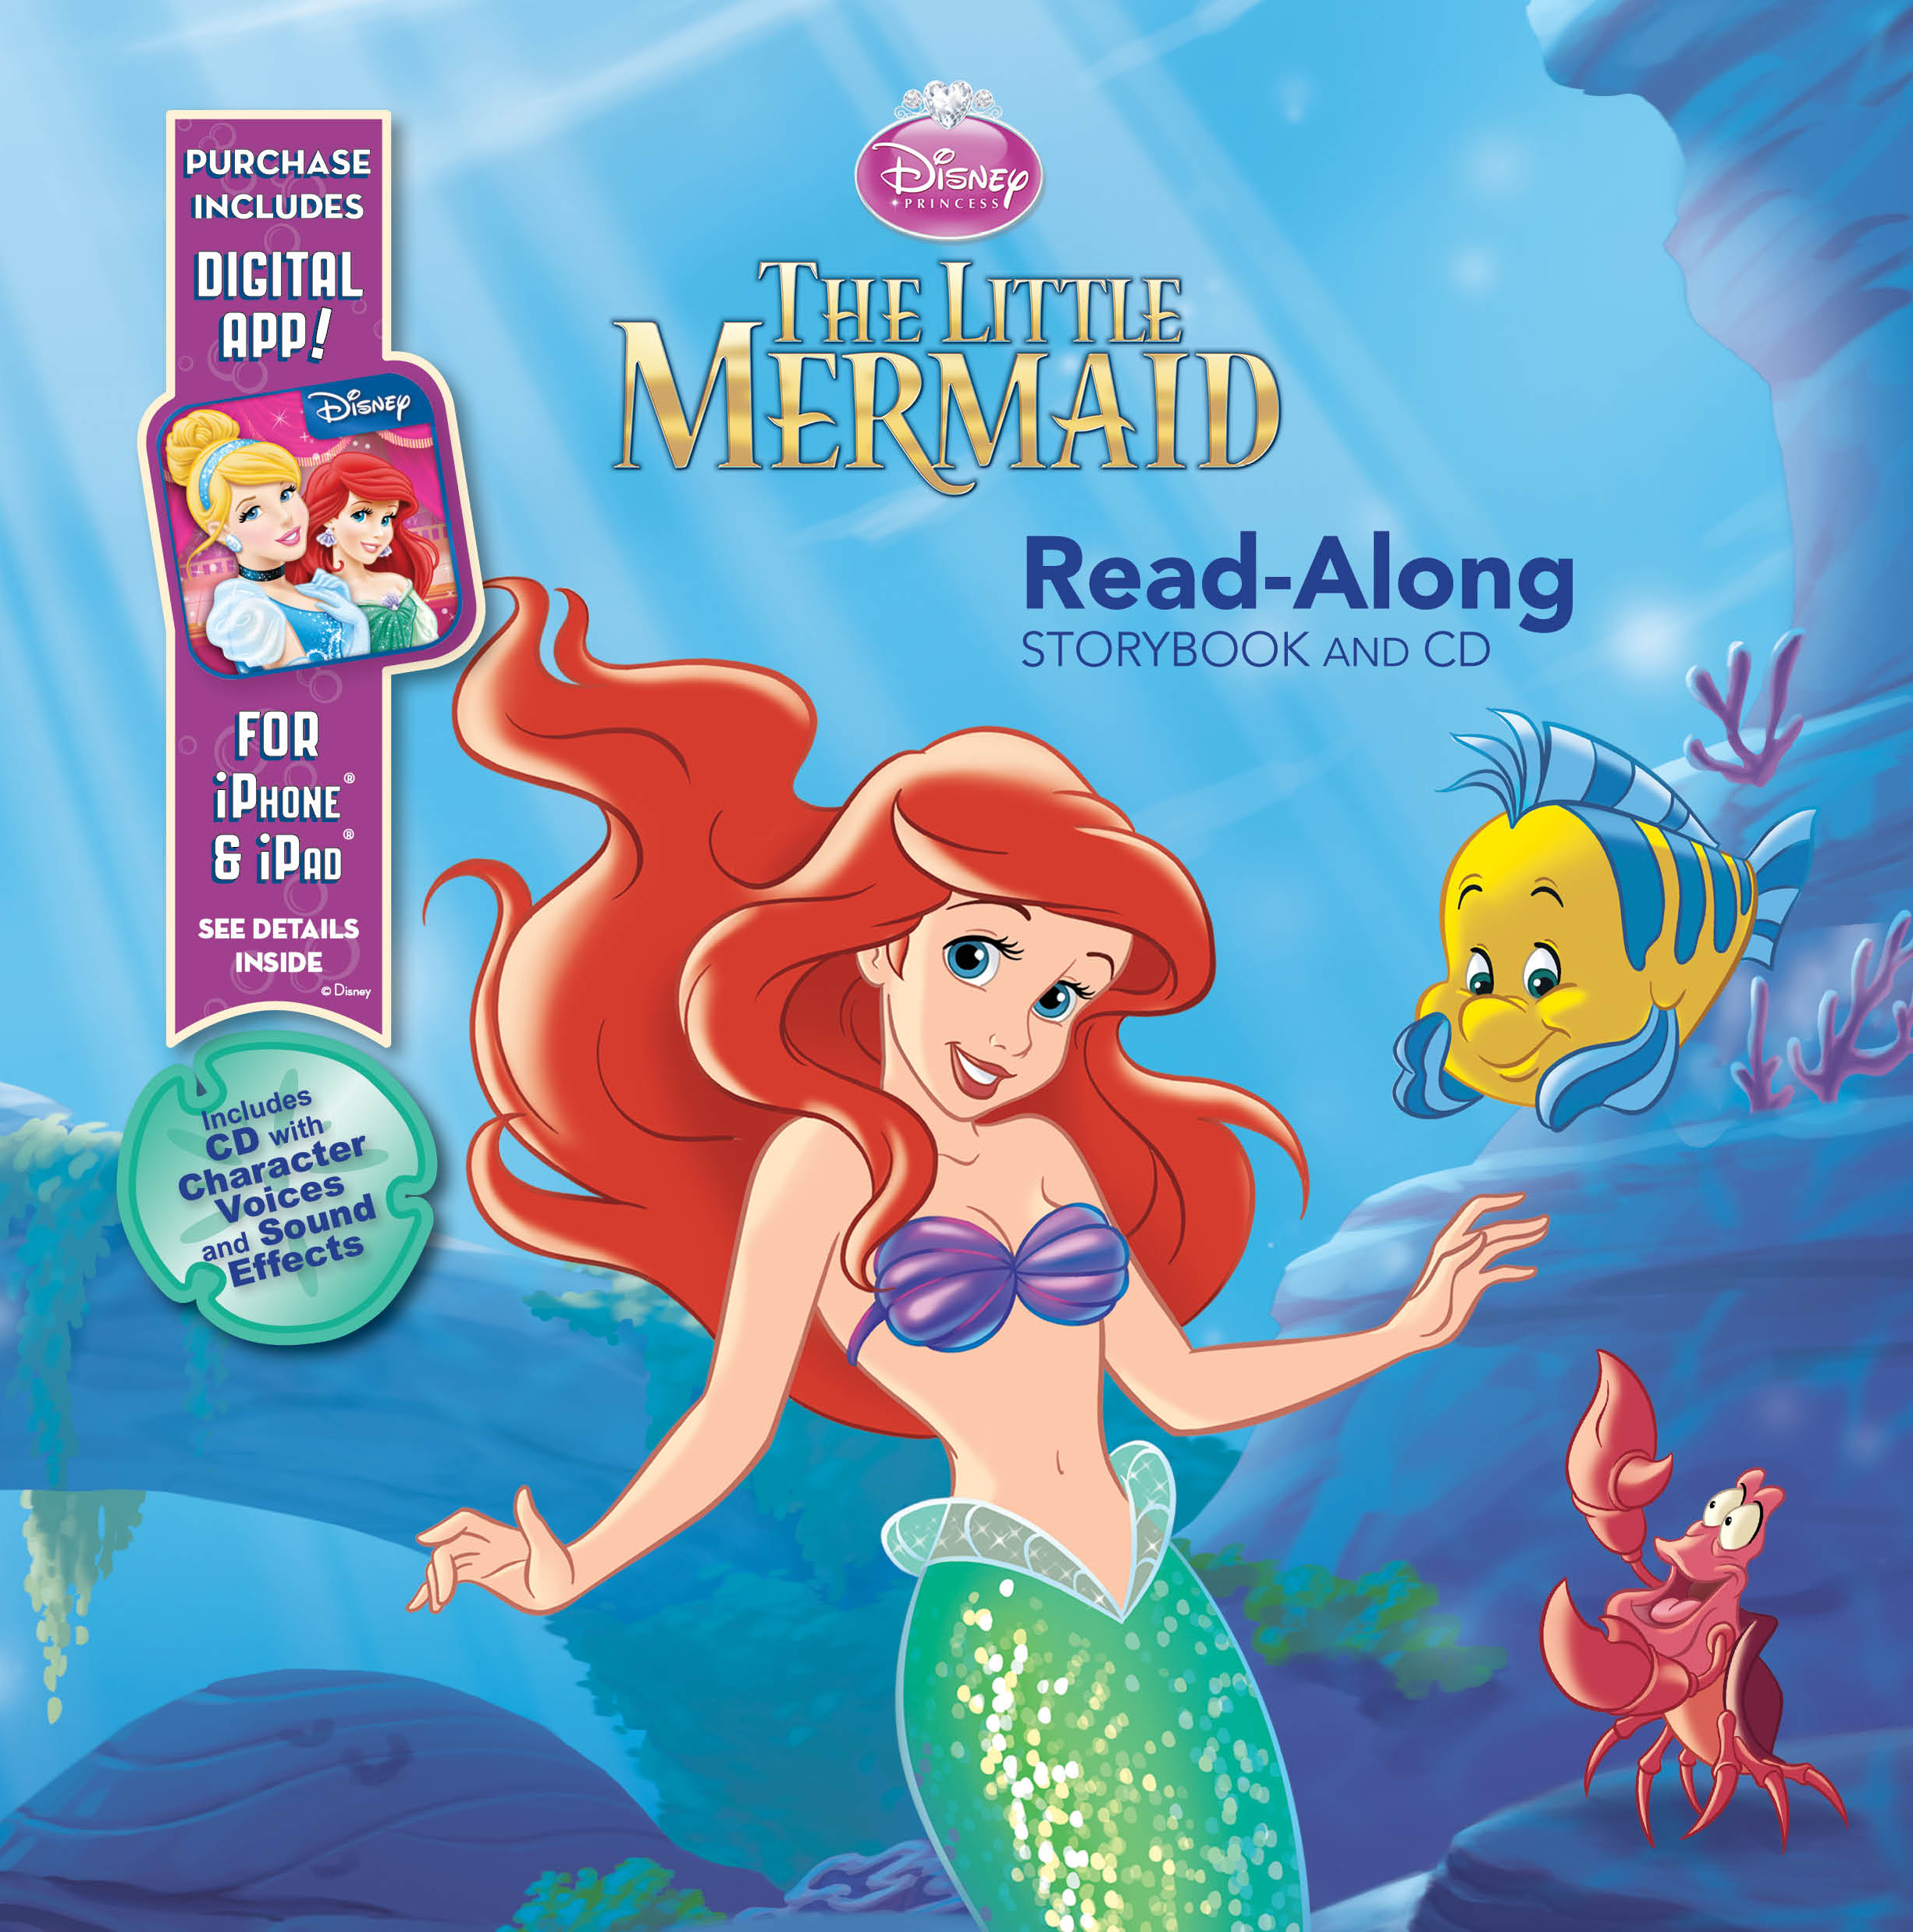 The Little Mermaid Read-Along Storybook and CD Set